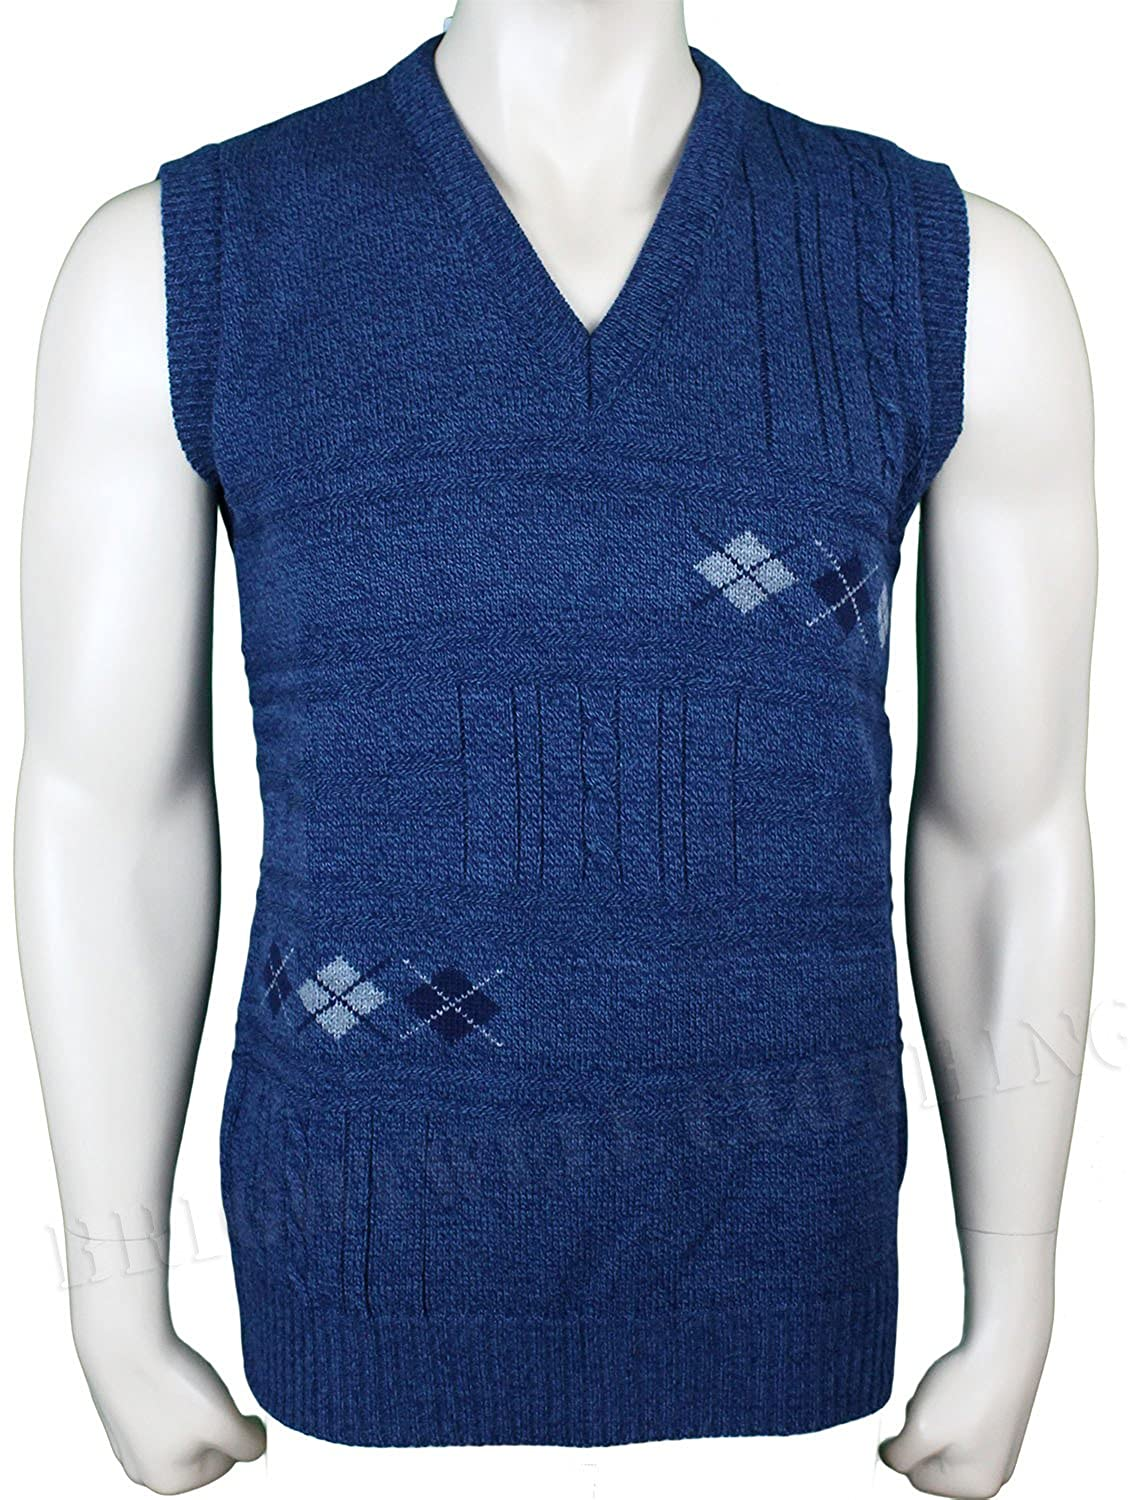 Mens Sleeveless Cardigan Knitted Waistcoat Classic Style Cardigans V Neck Sweater